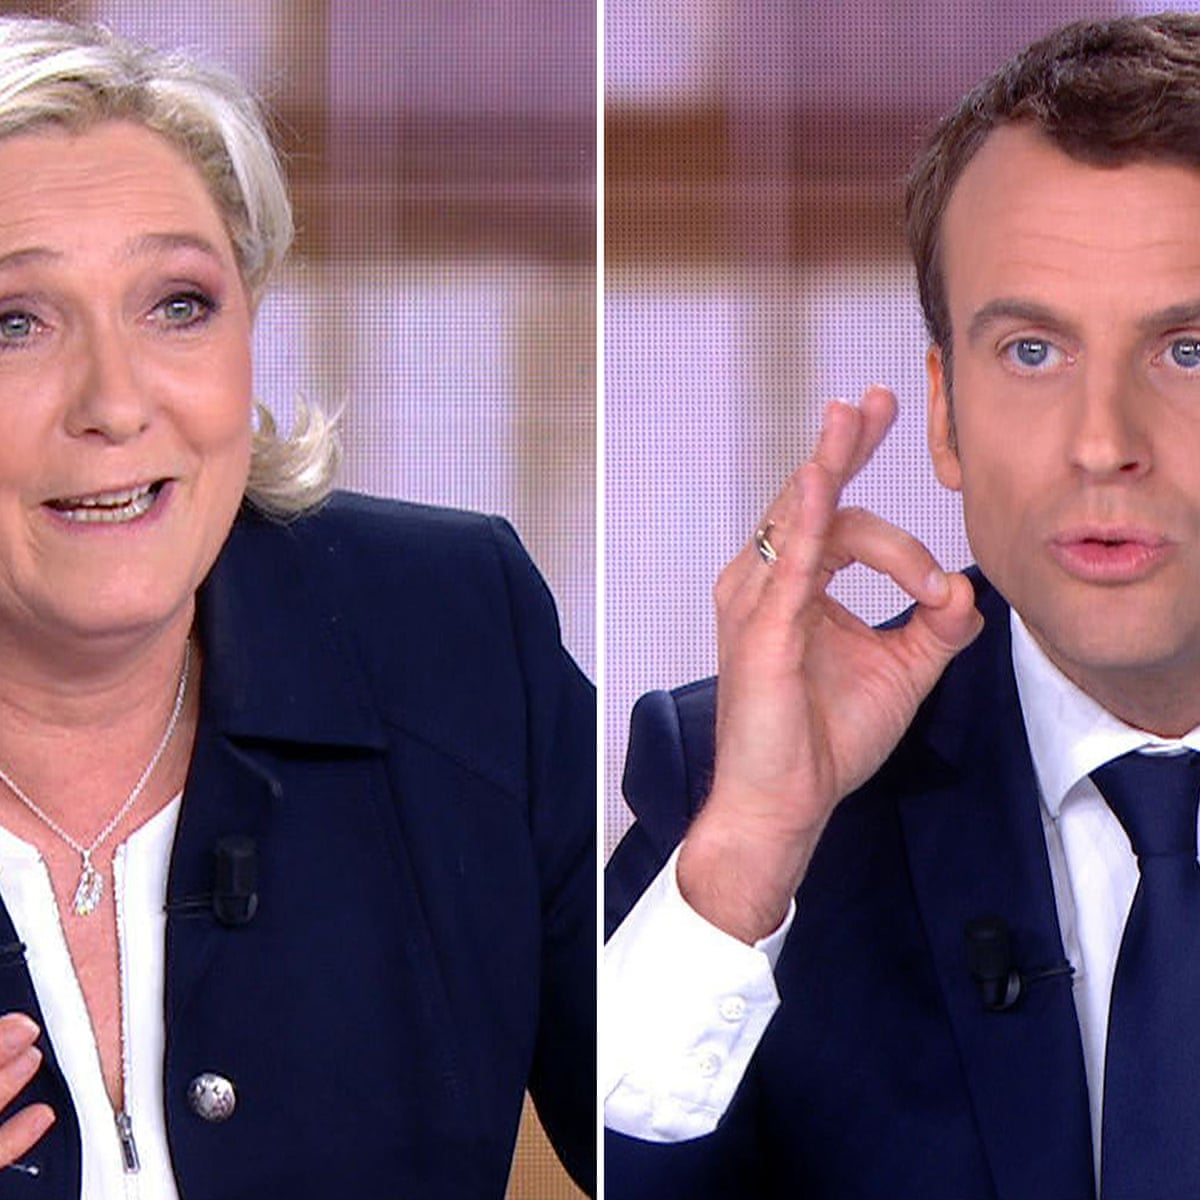 French Election Marine Le Pen And Emmanuel Macron Lock Horns In Tv Debate As It Happened World News The Guardian